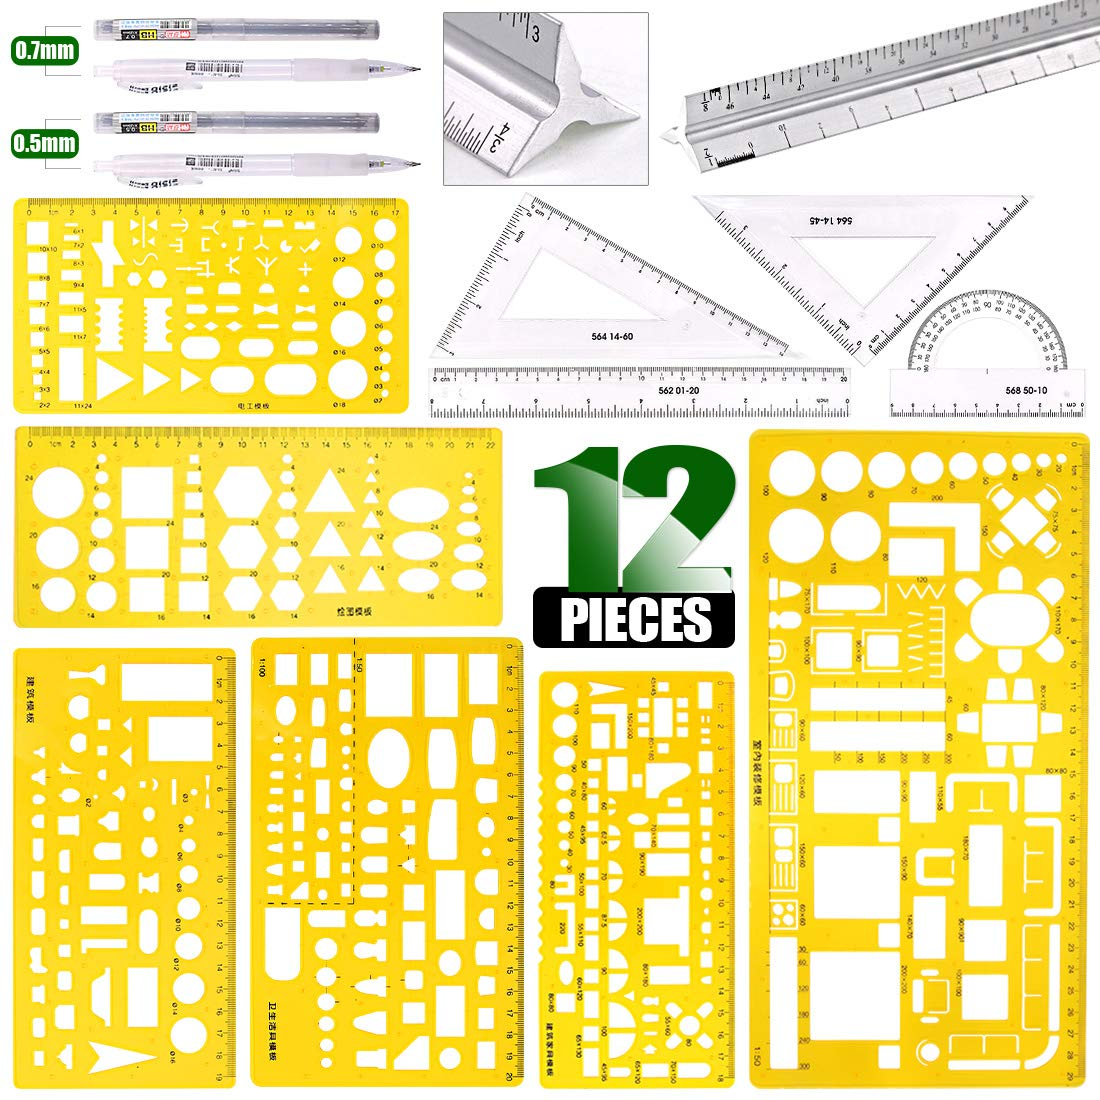 Keadic 12 Pieces Plastic Drawing Template Ruler Kit with Aluminum Architect Scale, Measuring Templates Building Geometric Drawing Rulers for Drafting Illustrations Architecture & School Work by Keadic